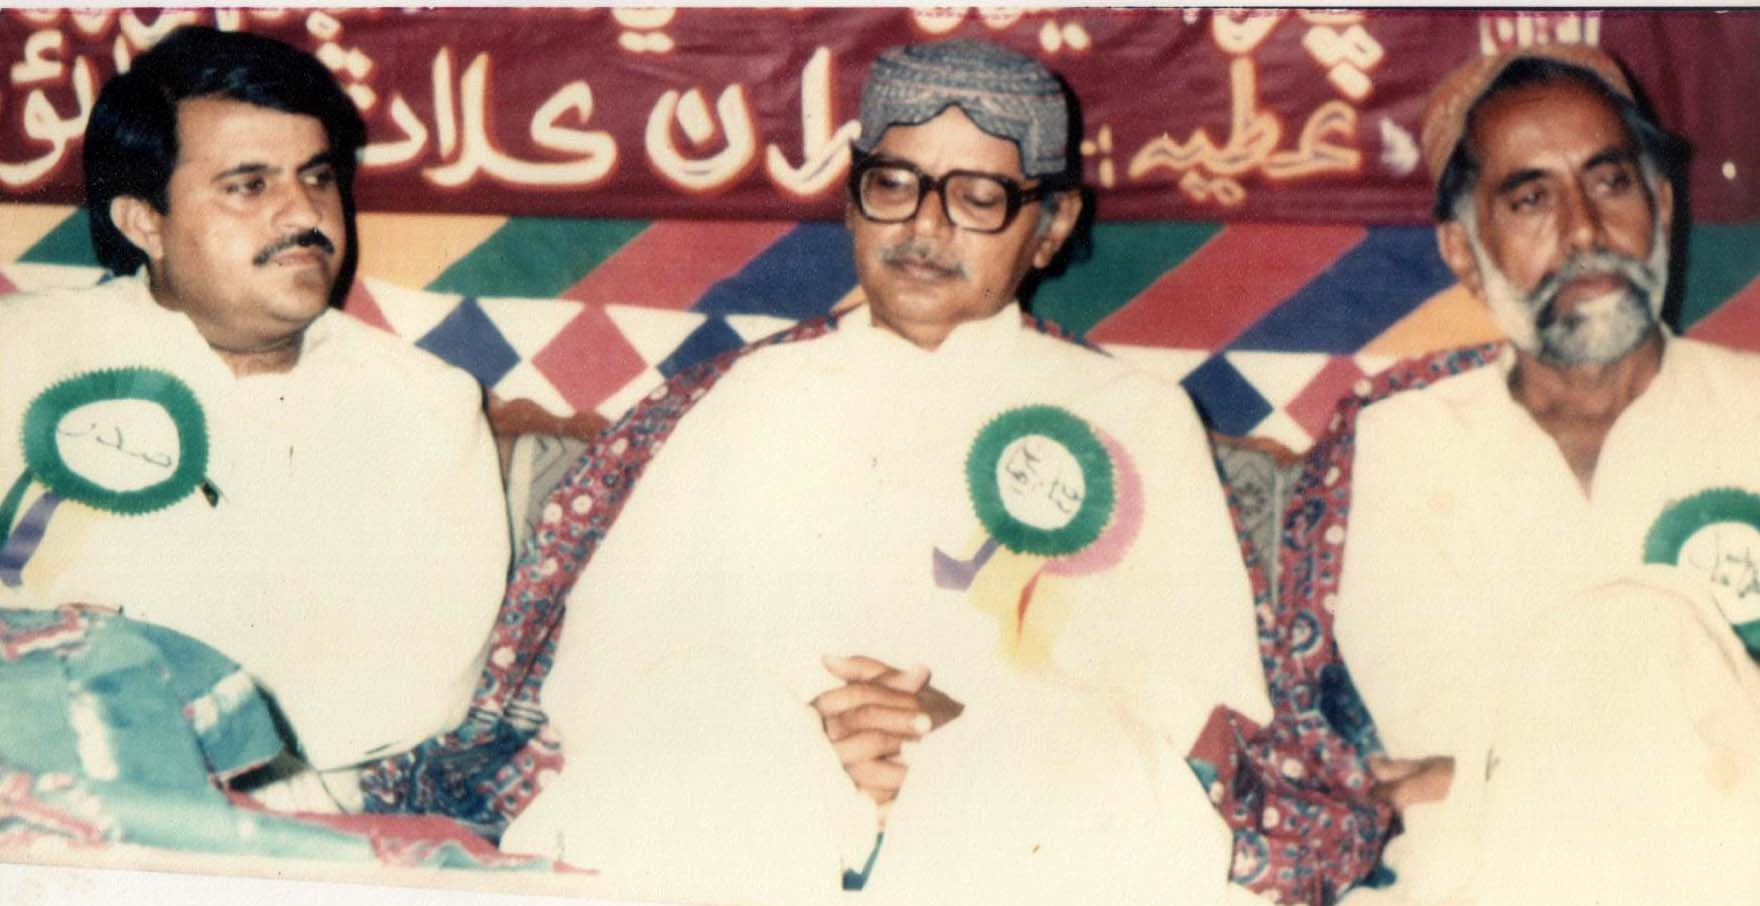 Maqsood Gul - The Rose of Garden of Letters - Sindh Courier-Ustad Bukhari, Maqsood Gul and Ahmed Khan Madahosh